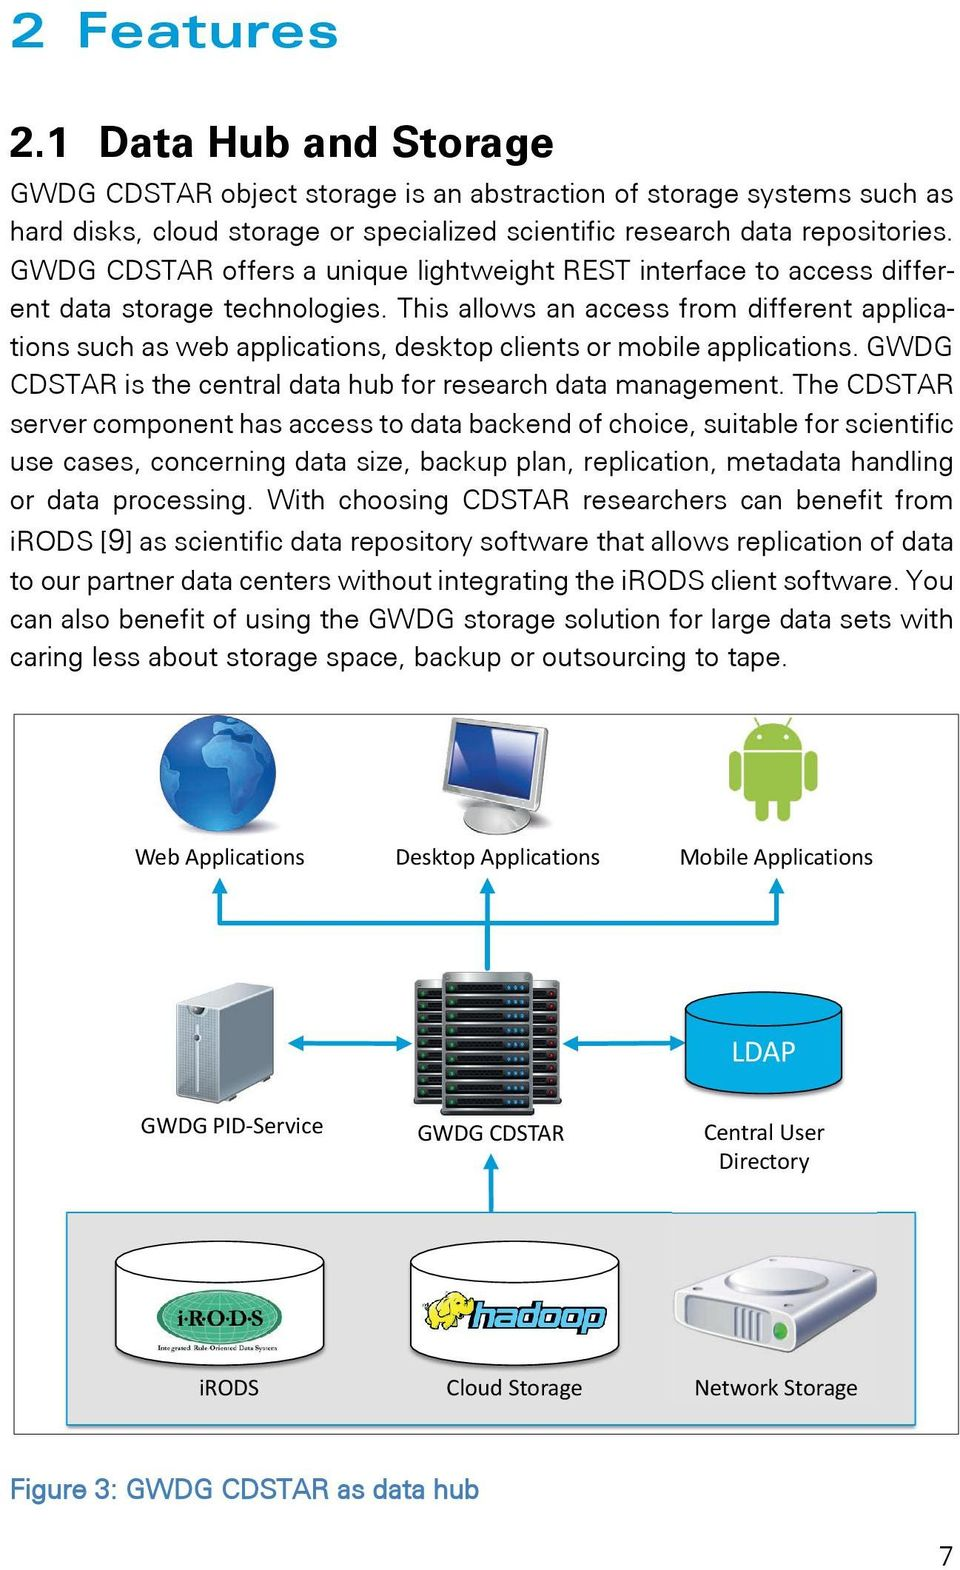 This allows an access from different applications such as web applications, desktop clients or mobile applications. GWDG CDSTAR is the central data hub for research data management.